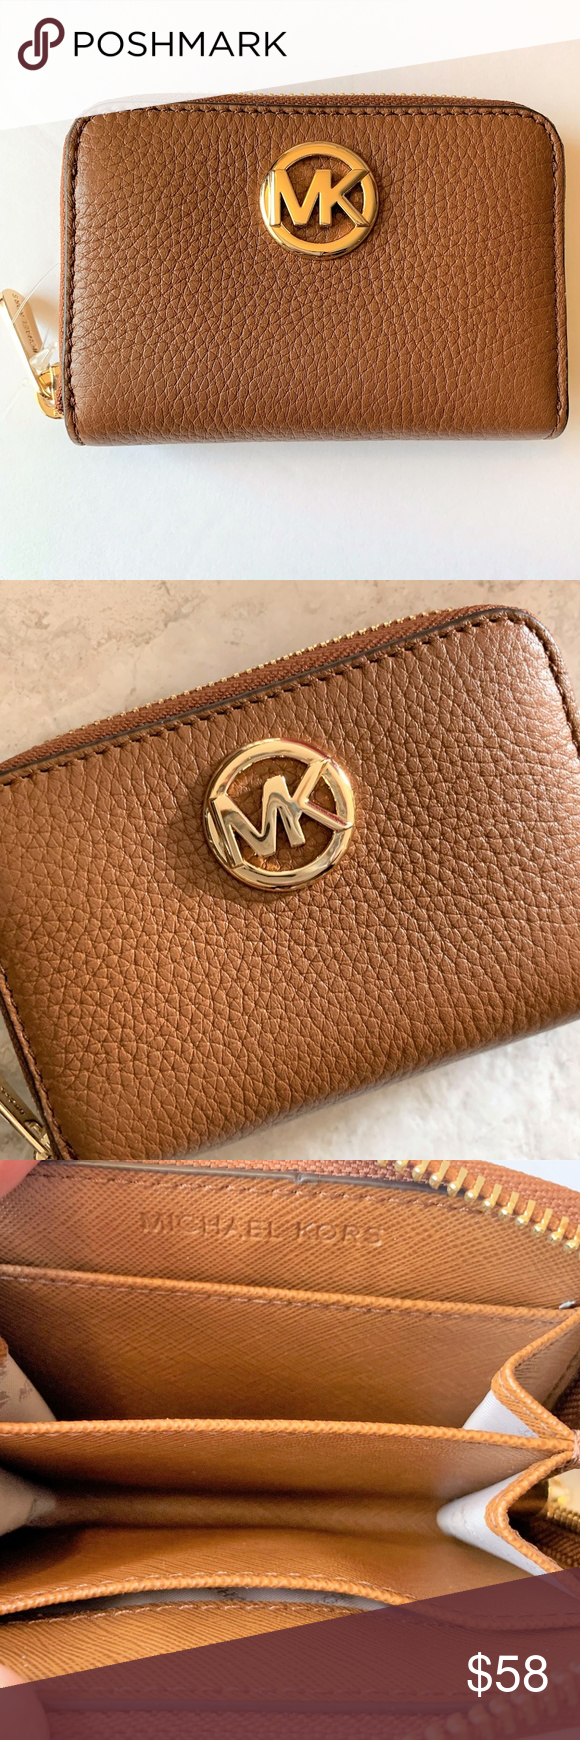 b33a74048a2fdd Michael Kors Coin Case Zip Mini Wallet Luggage MK Fulton Zip Around Coin  Case/Coin